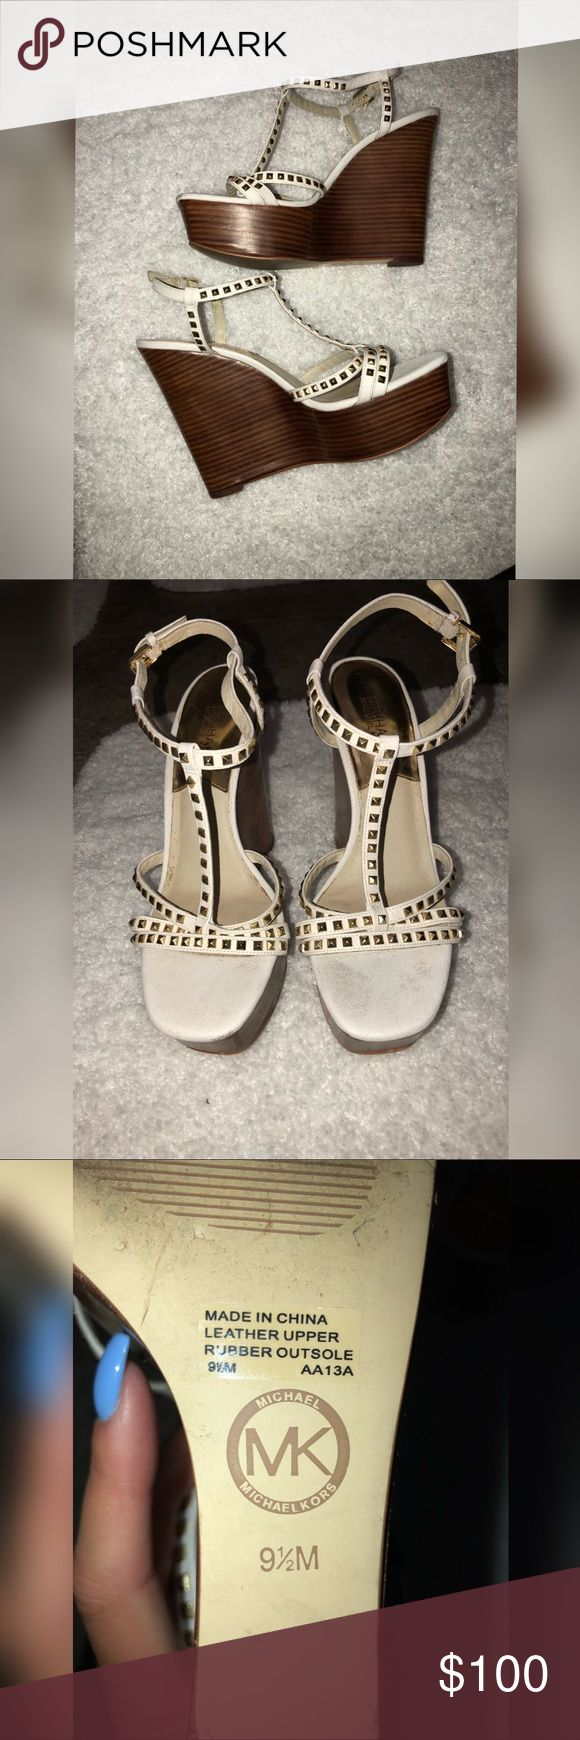 Michael Kors Wedges Michael Kors white with gold studded wedges. Very comfortable. Super cute for weddings and summer :)   ** will be professionally cleaned by shoe store, receipt will be included. Michael Kors Shoes Wedges